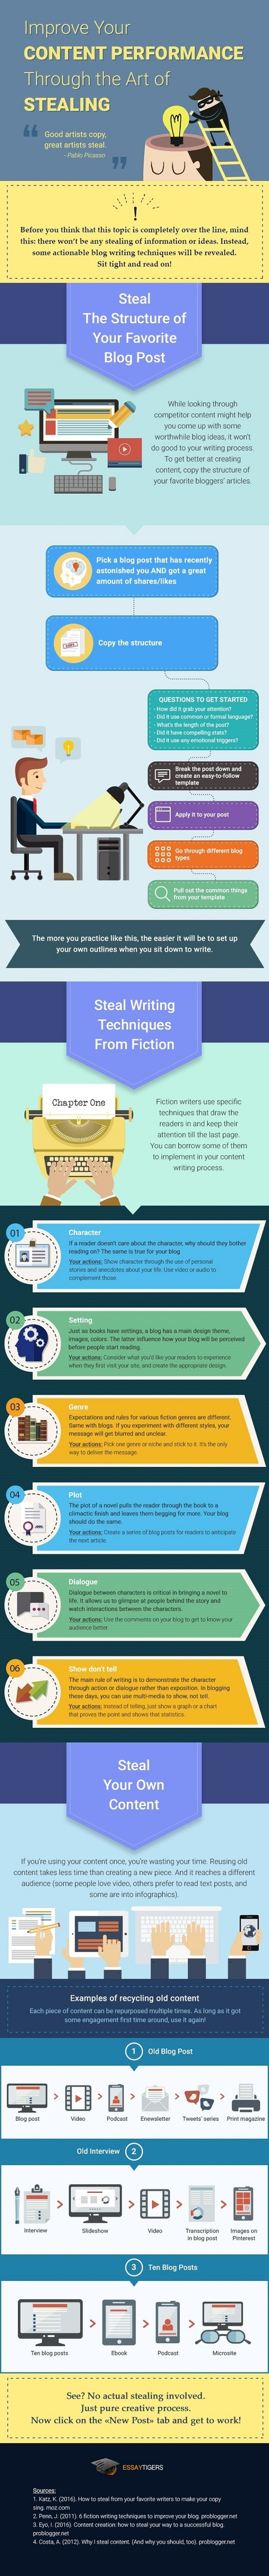 How to Improve Blog Writing Through the Art of 'Stealing' [Infographic] | Integrated Brand Communications | Scoop.it